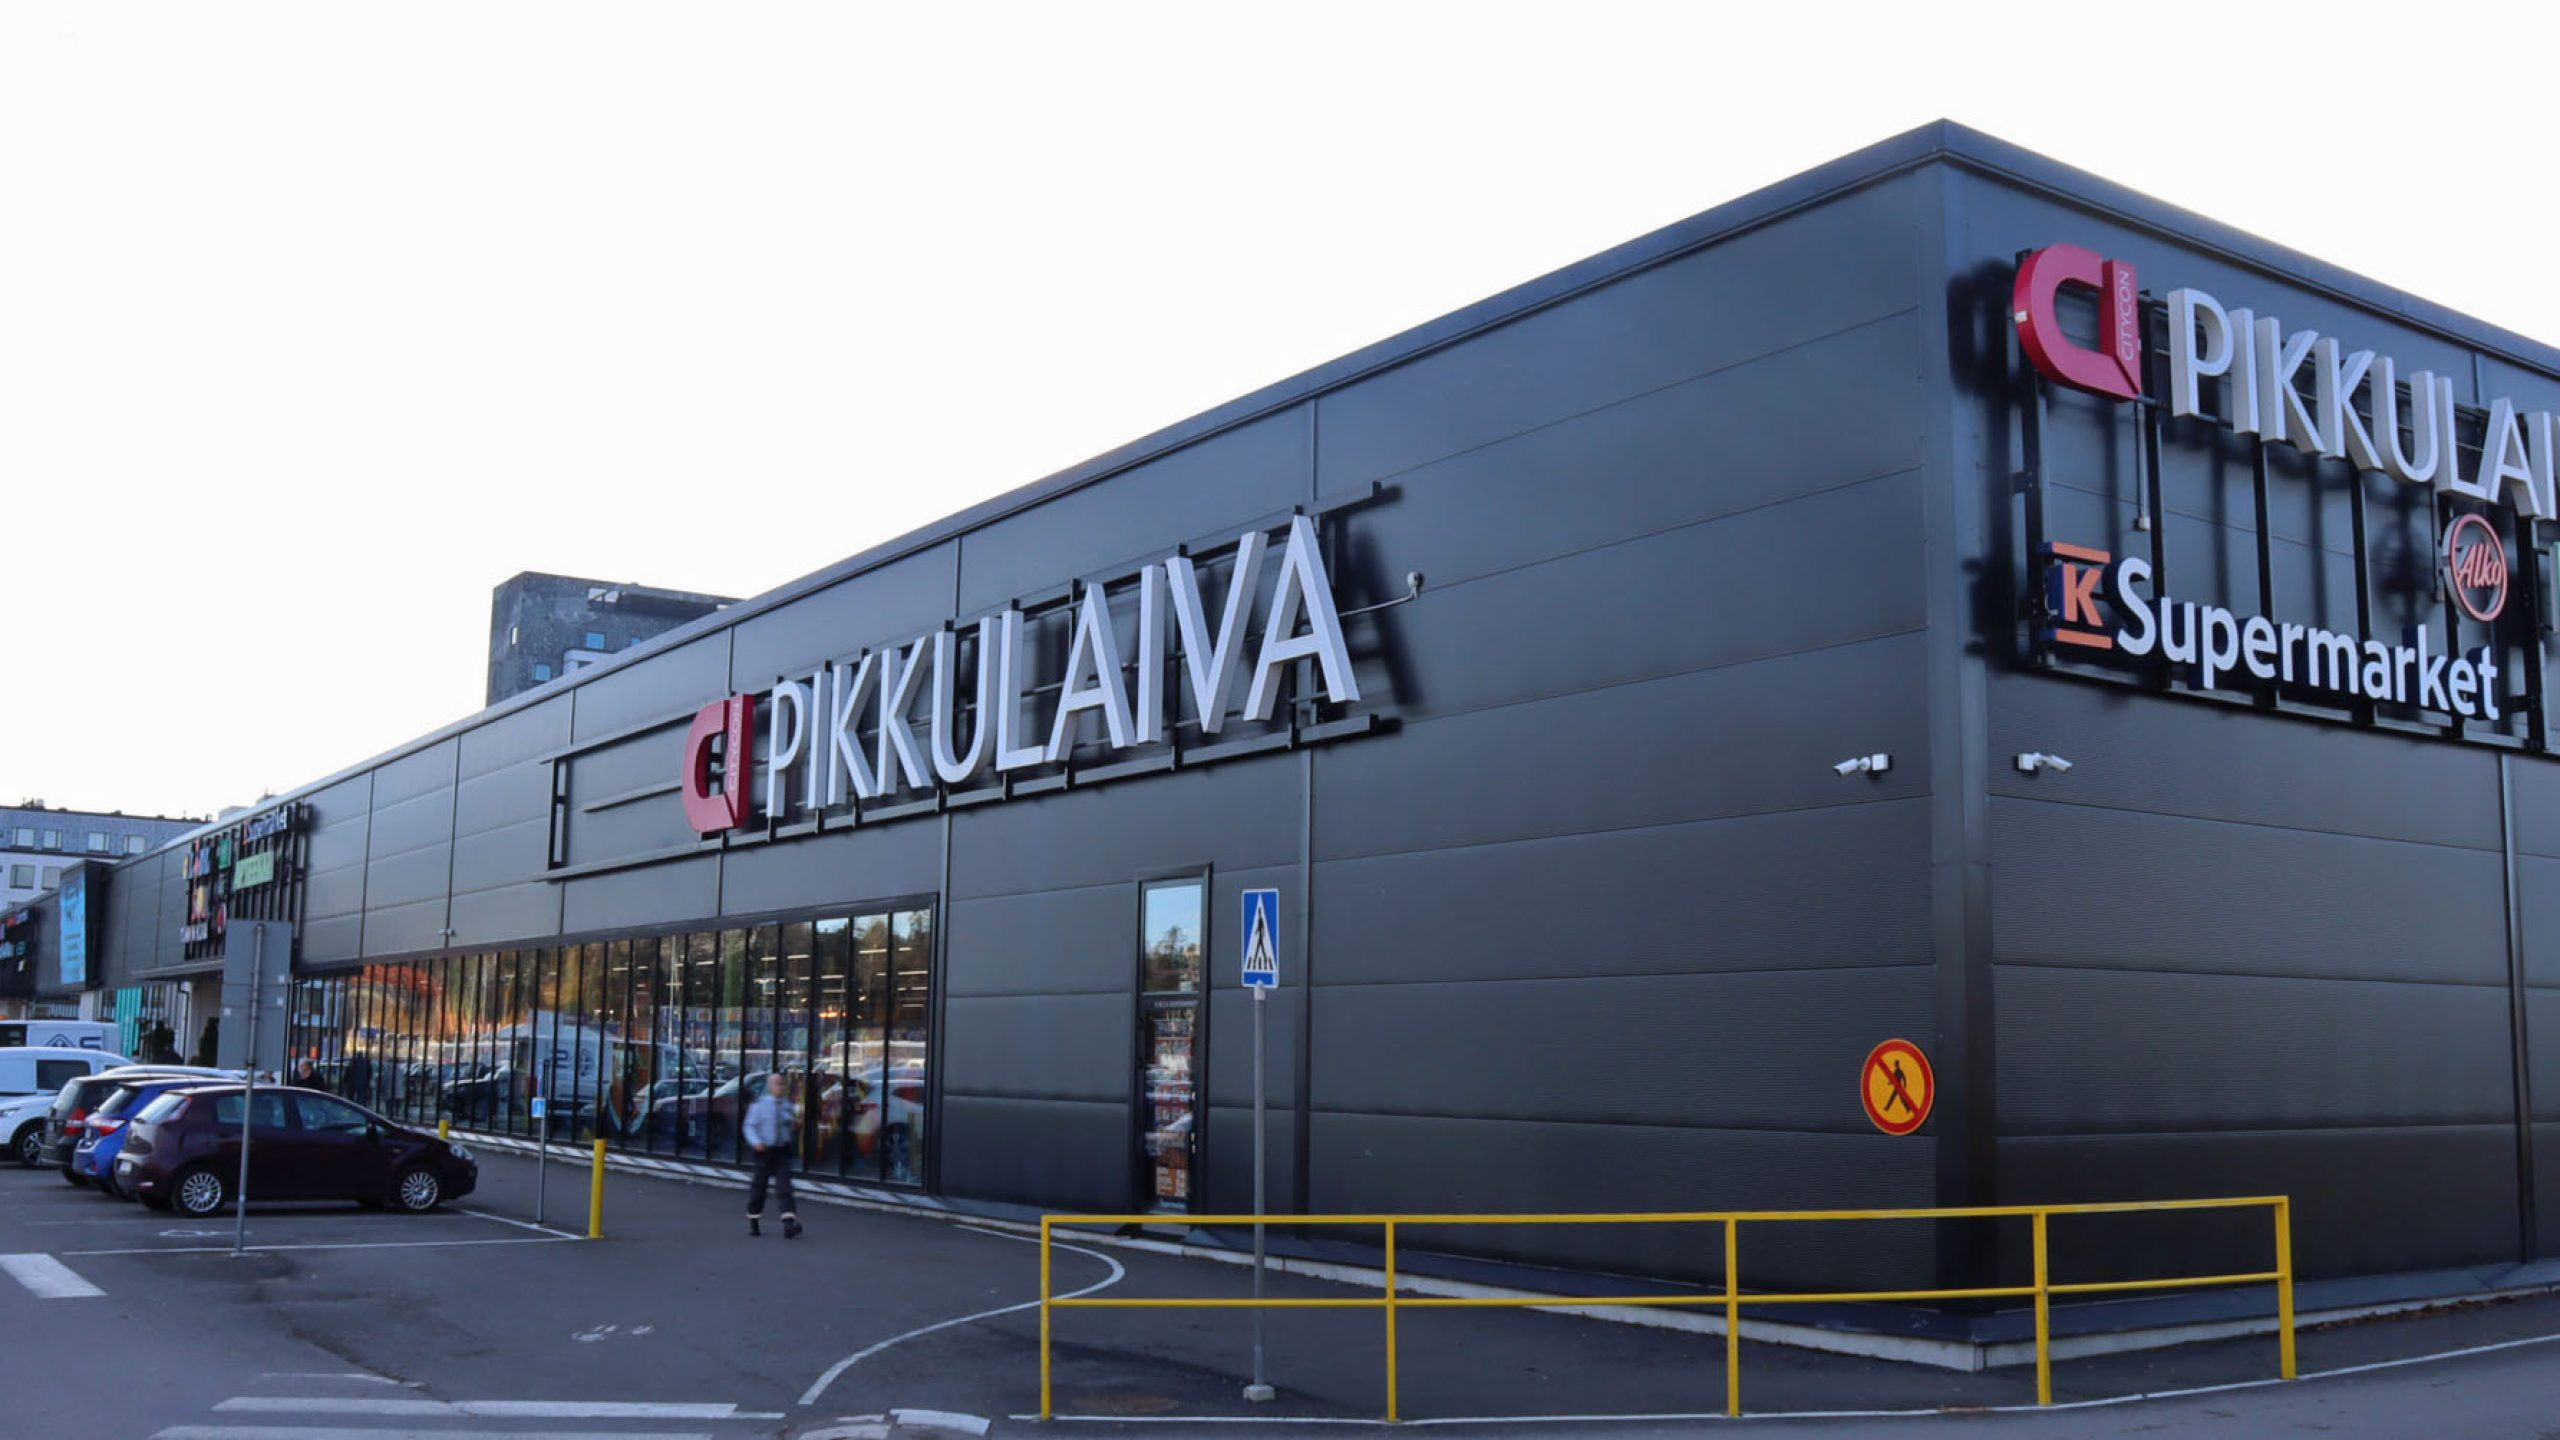 Shopping Digital - Pikkulaiva